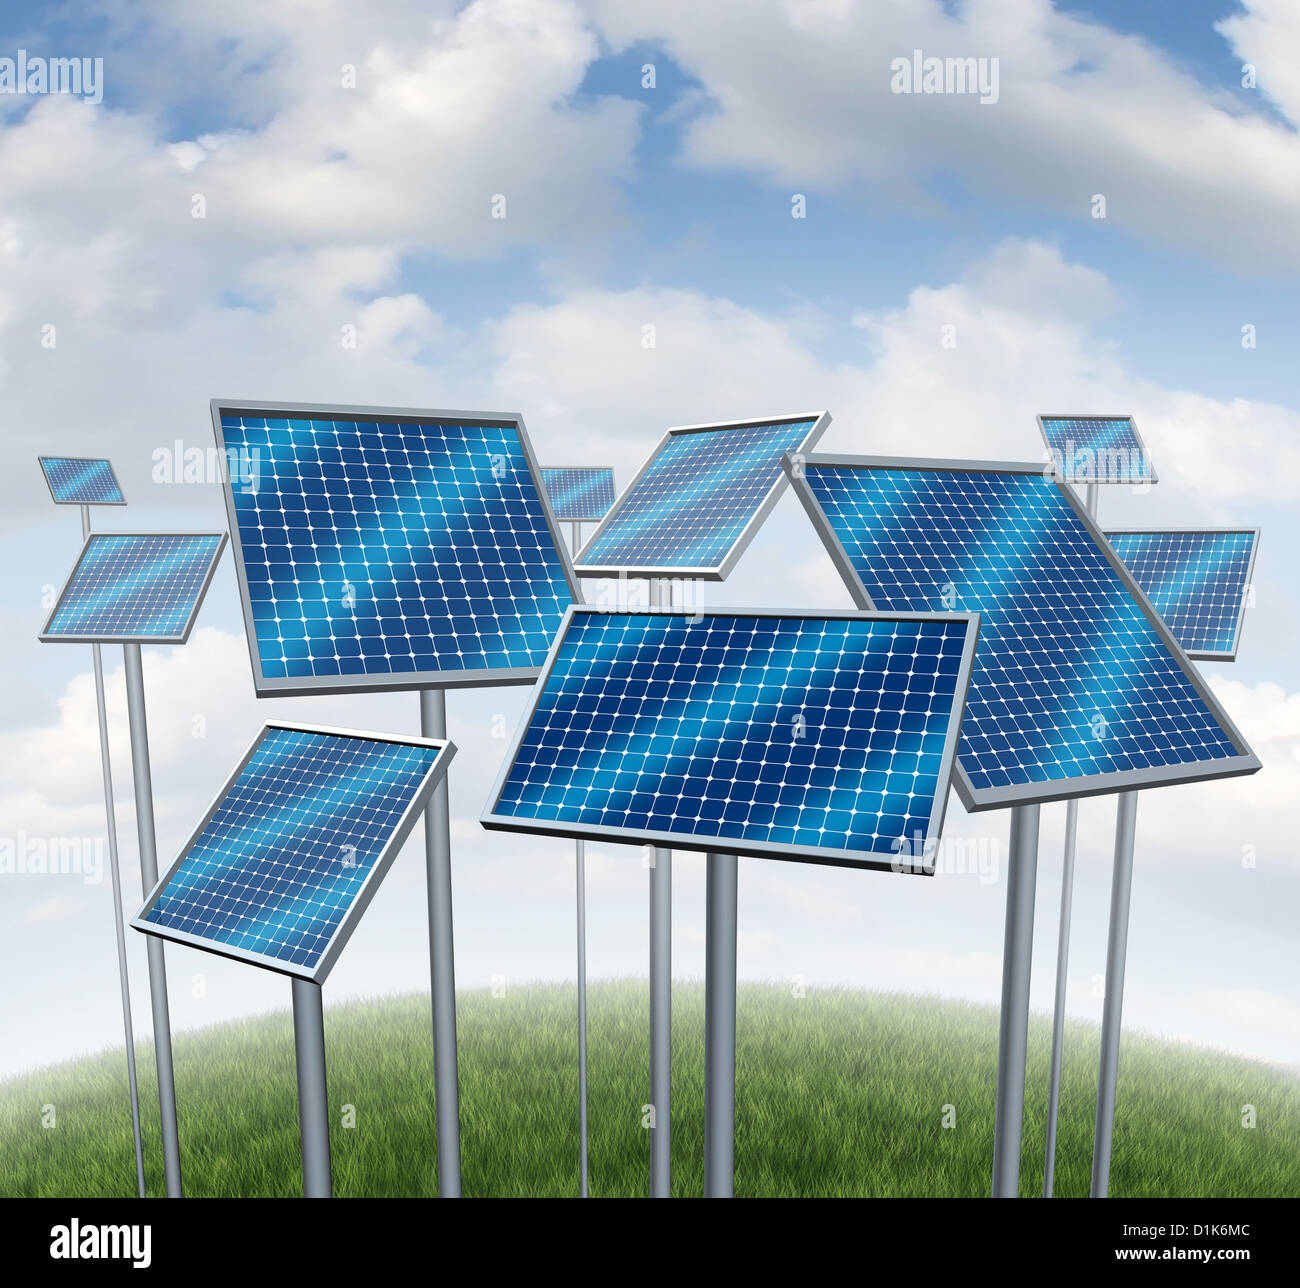 Renewable energy with solar panels symbol of a photovoltaic power station technology or sun farm represented by - Stock Image